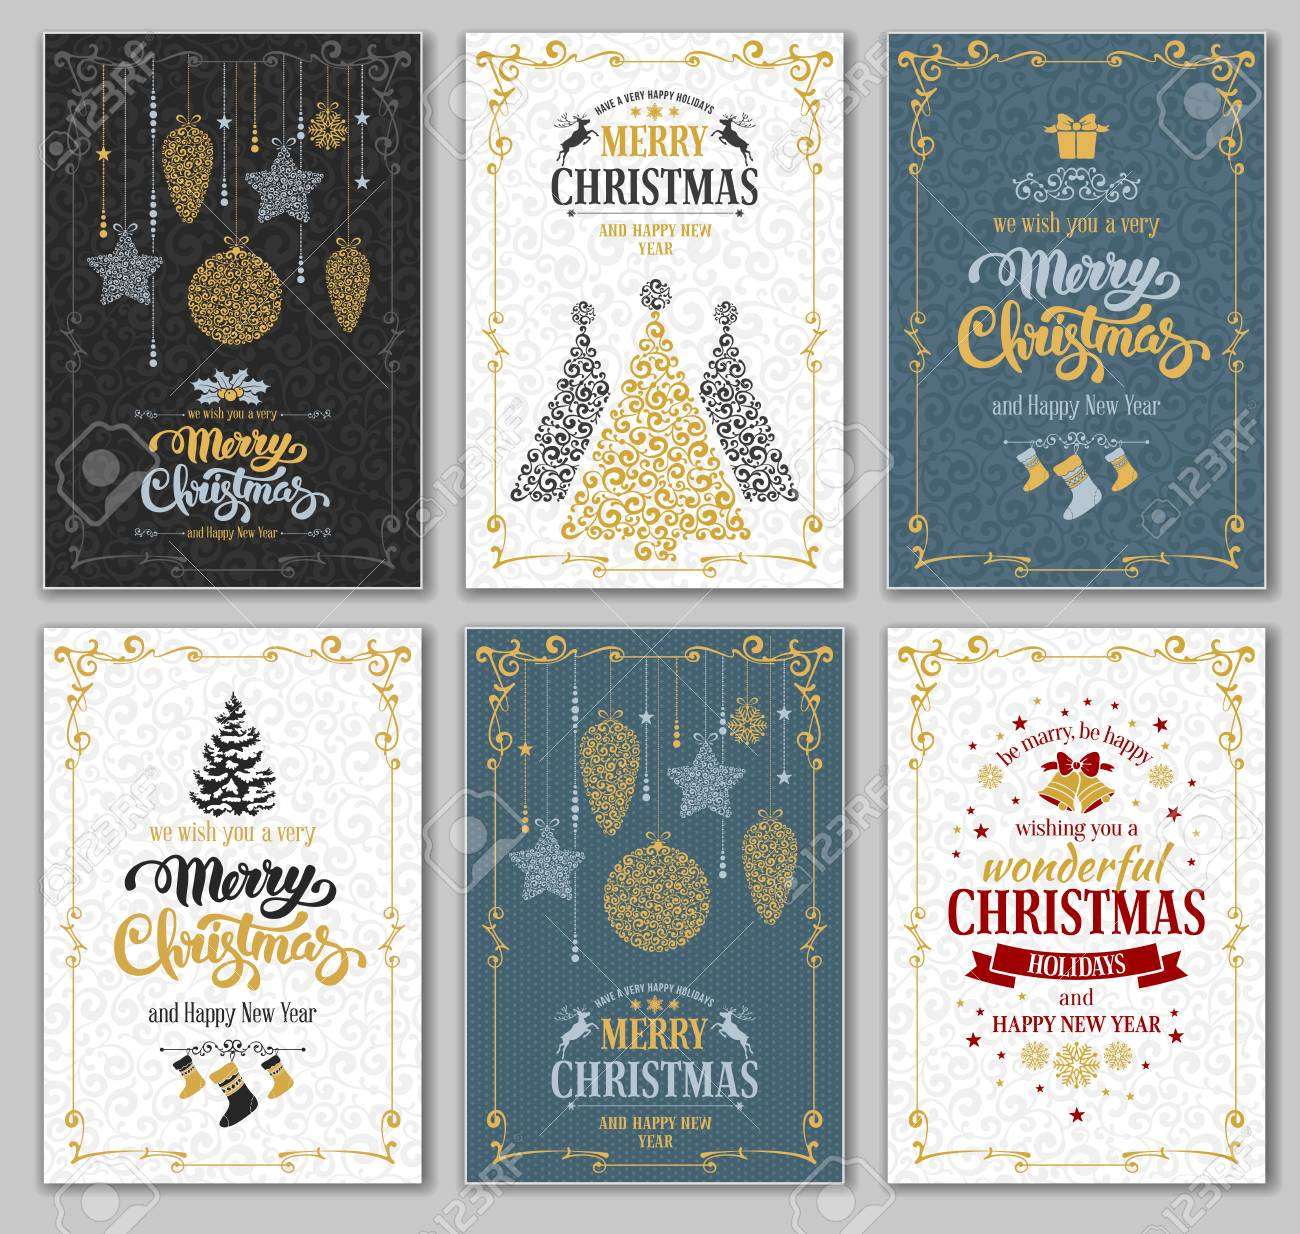 merry christmas and happy new year greeting cards designs set vector graphic in unusual style